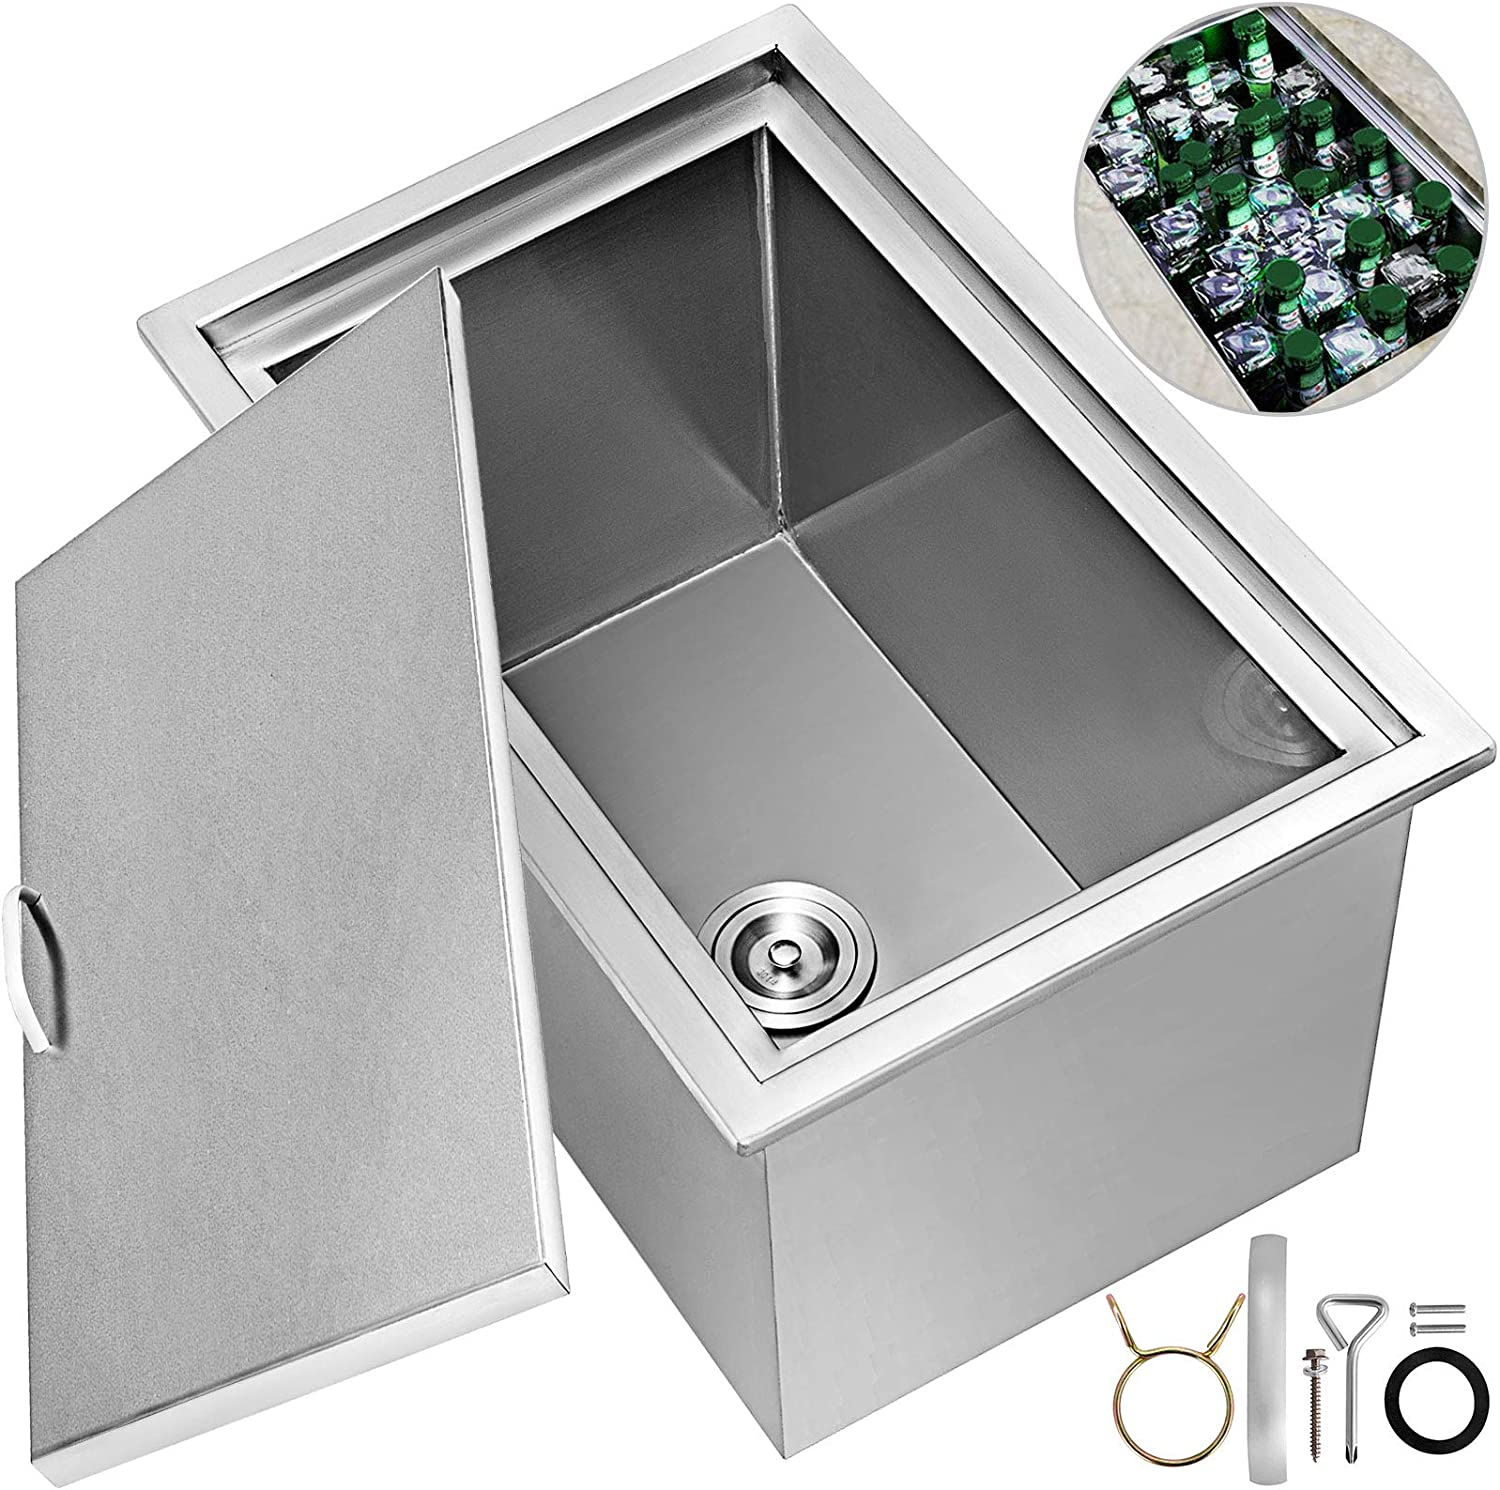 Happybuy Drop in Ice Chest 22x17x12 Inch with Cover 304 Stainless Steel Drop in Cooler Included Drain-pipe and Drain Plug Drop in Ice Bin for Cold Wine Beer